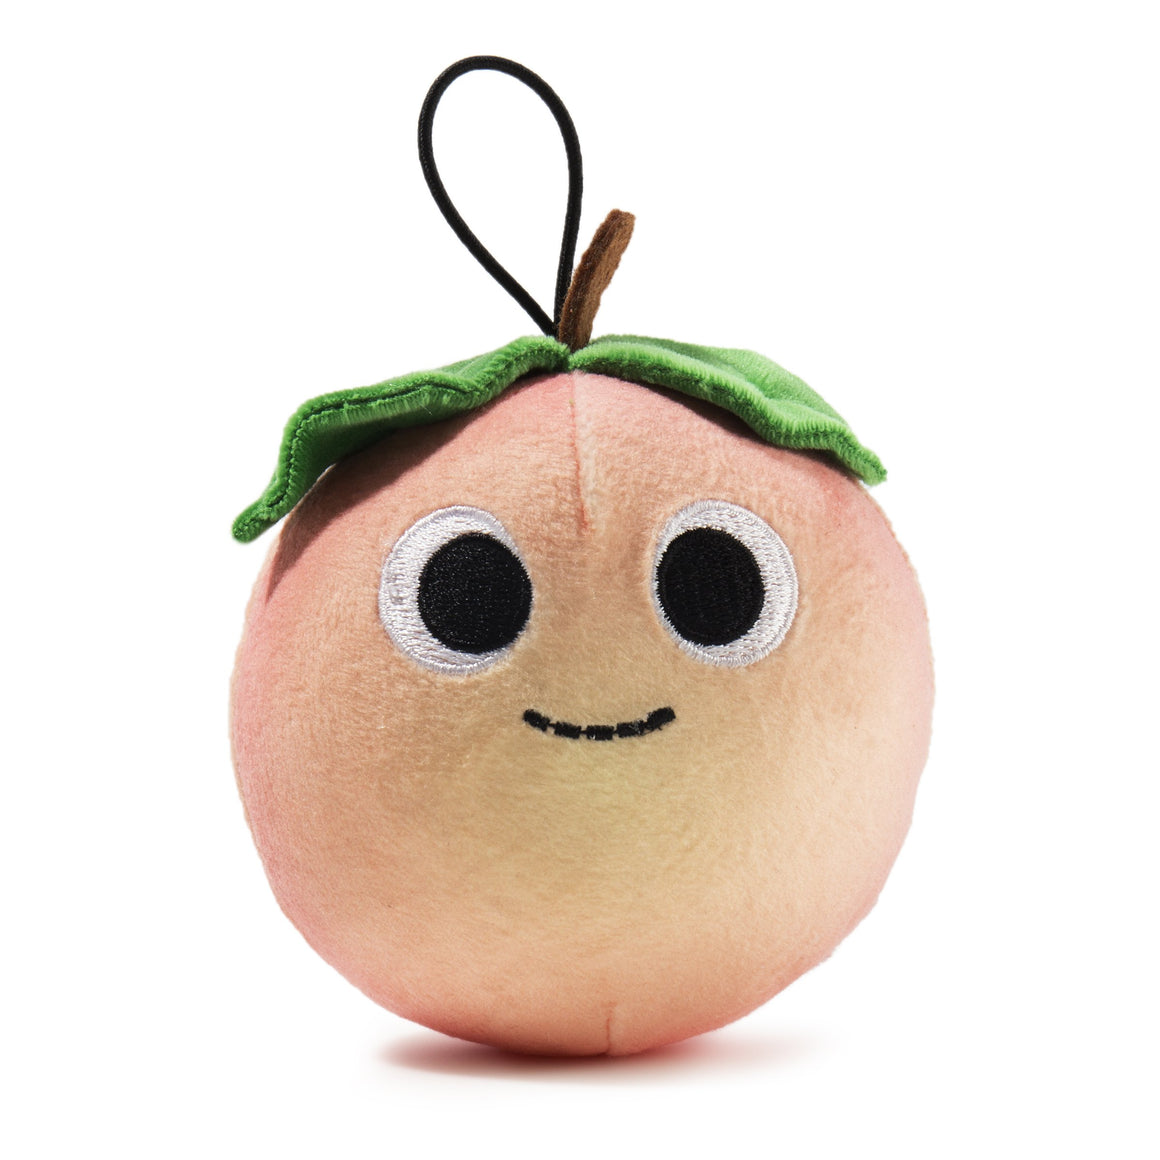 100% Polyester - Yummy World Small Peach Plush